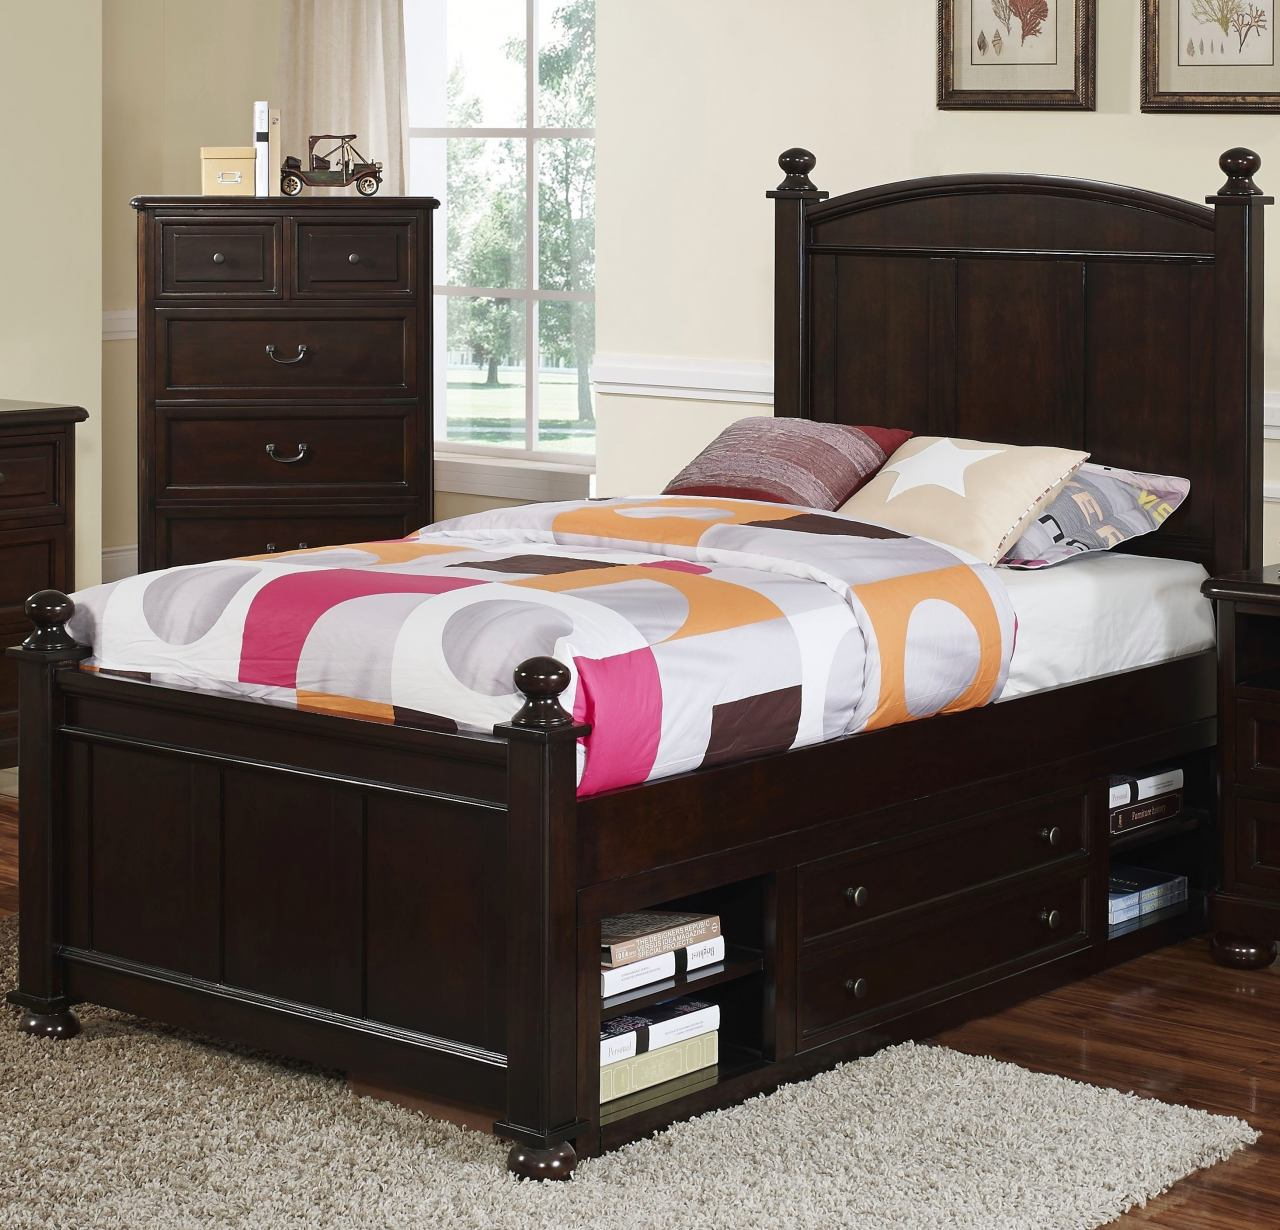 New Classic Canyon Ridge Twin Panel Bed with Storage in Chestnut CLOSEOUT